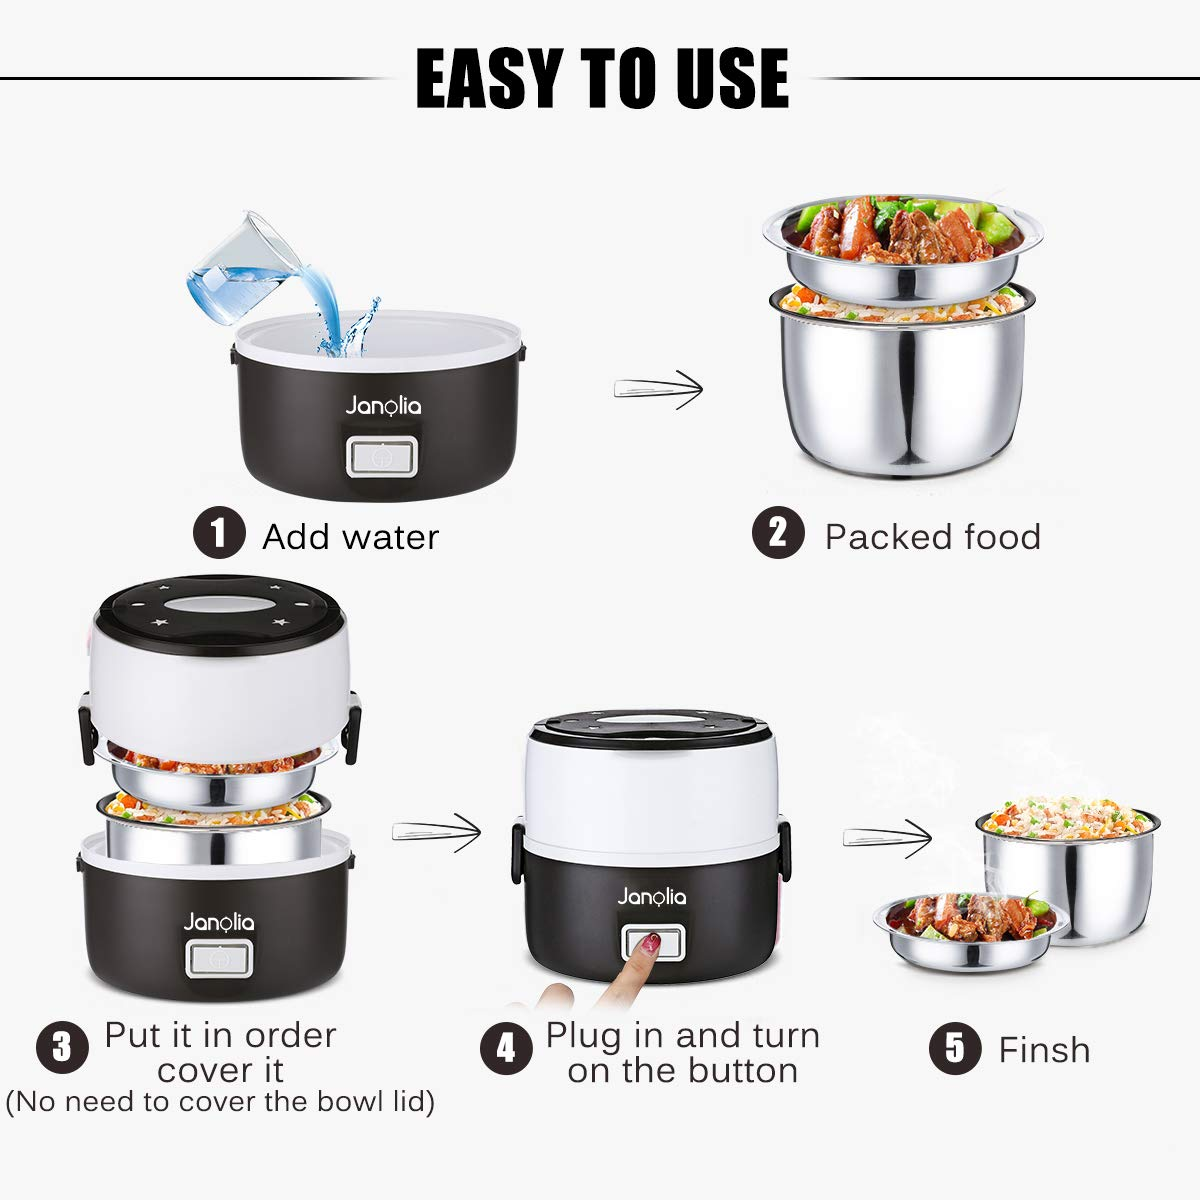 Janolia Electric Food Steamer, Portable Lunch Box Steamer with Stainless Steel Bowls, Measuring Cup by Janolia (Image #5)